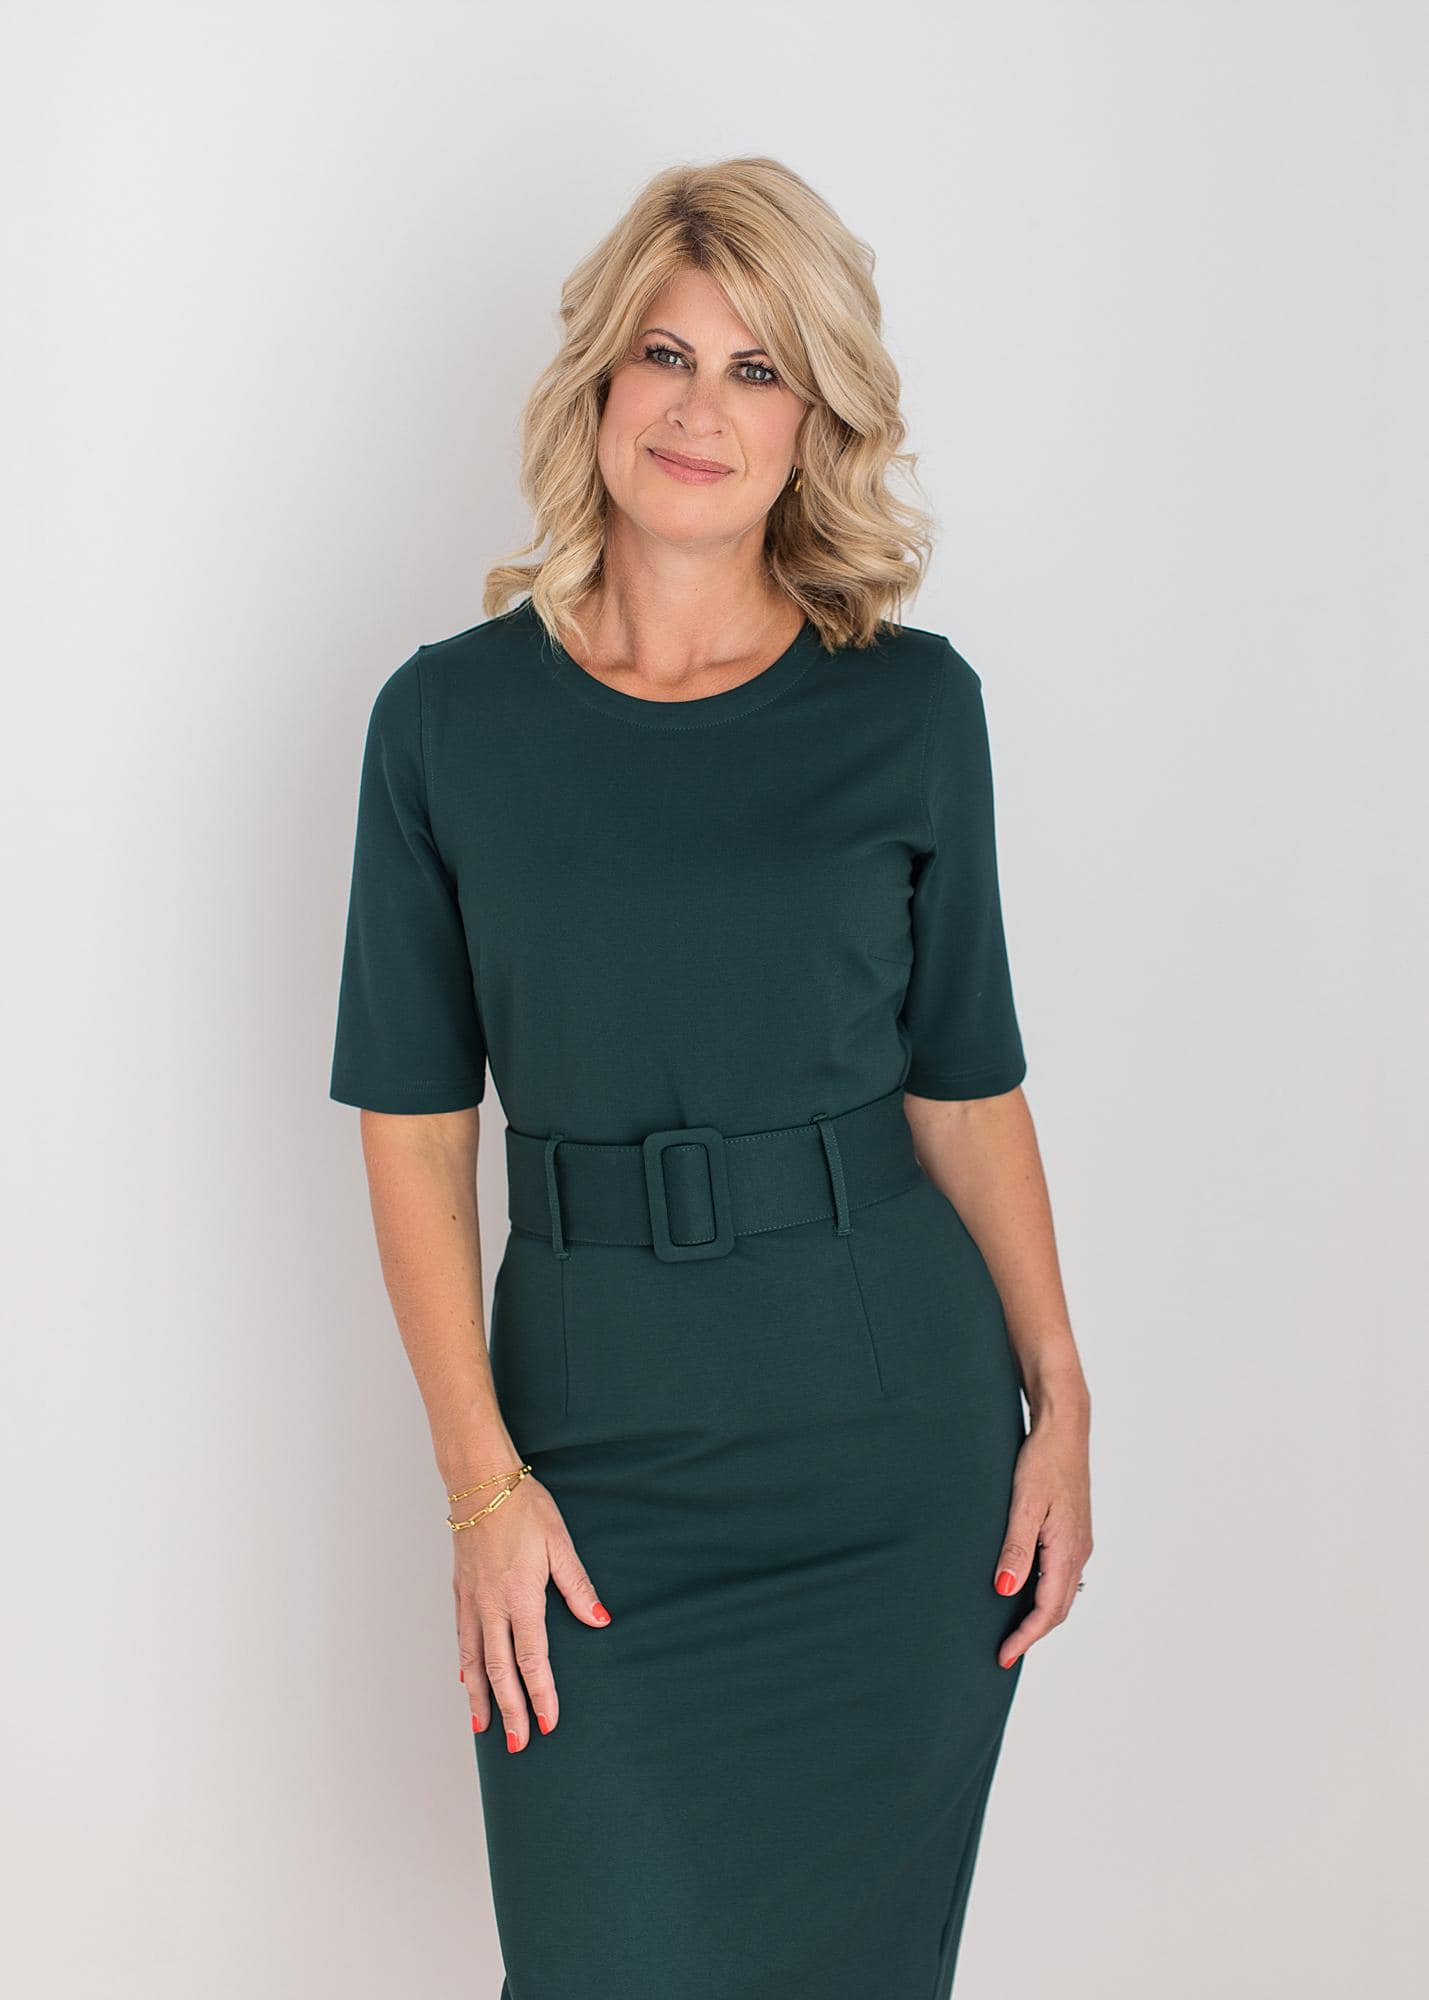 Blond haired woman poses in a Green dress for a Personal Branding Photoshoot in a Suffolk Photography Studio